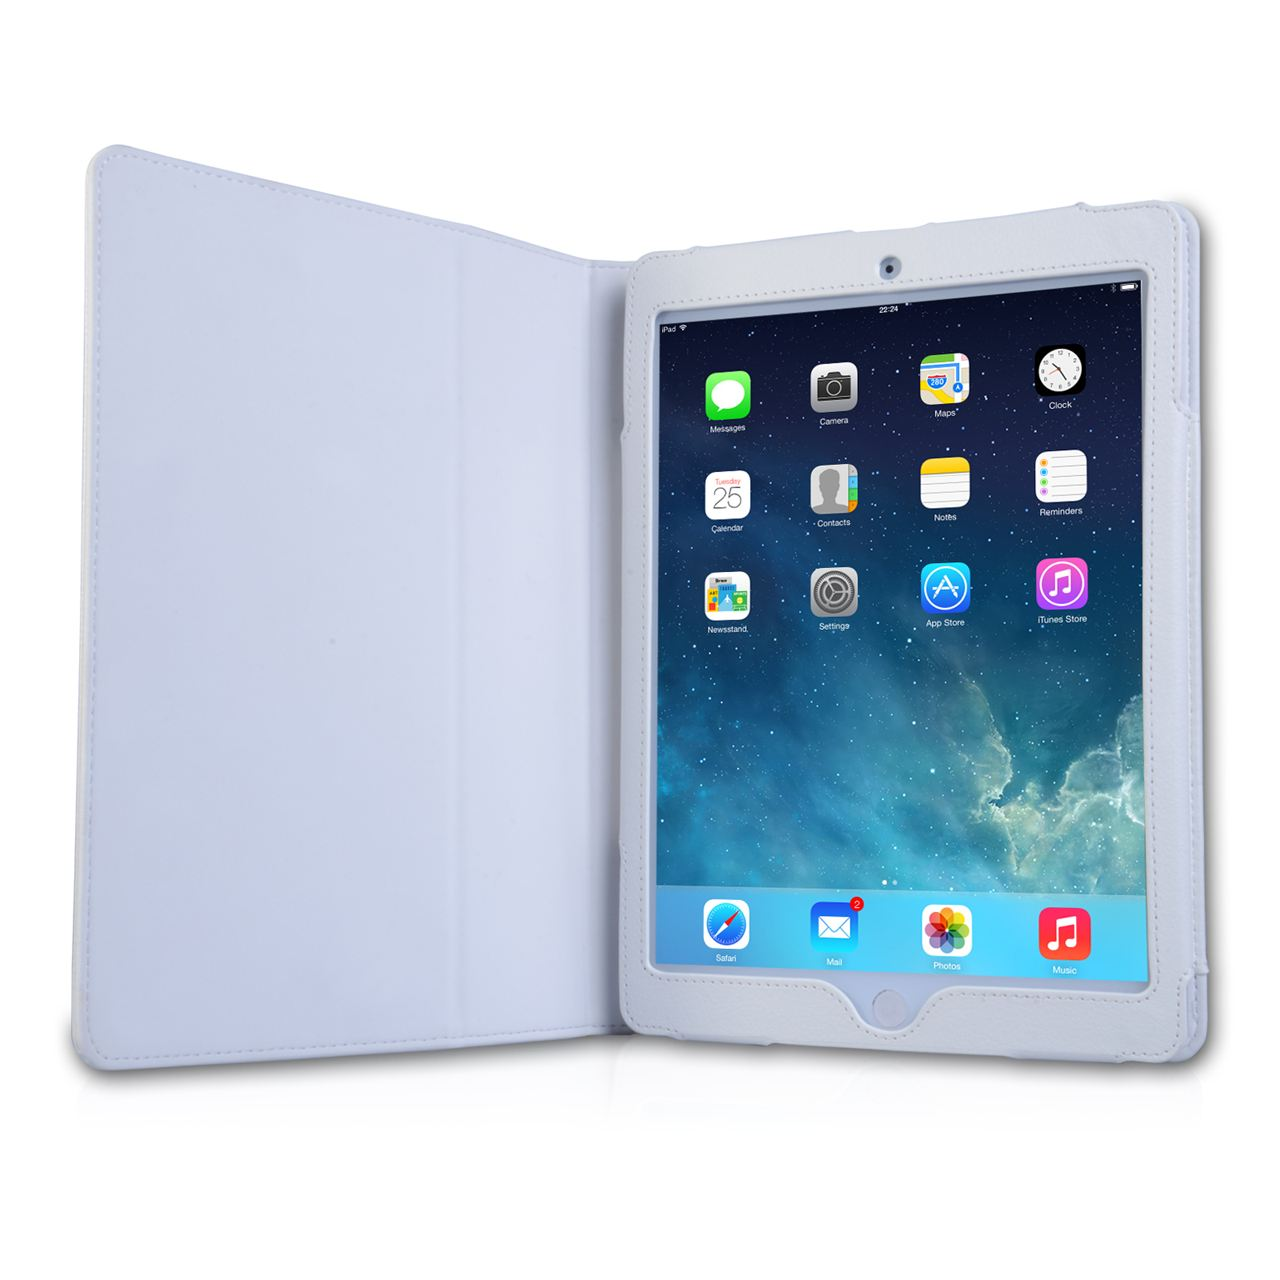 Caseflex iPad Air Textured Faux Leather Stand Case - White